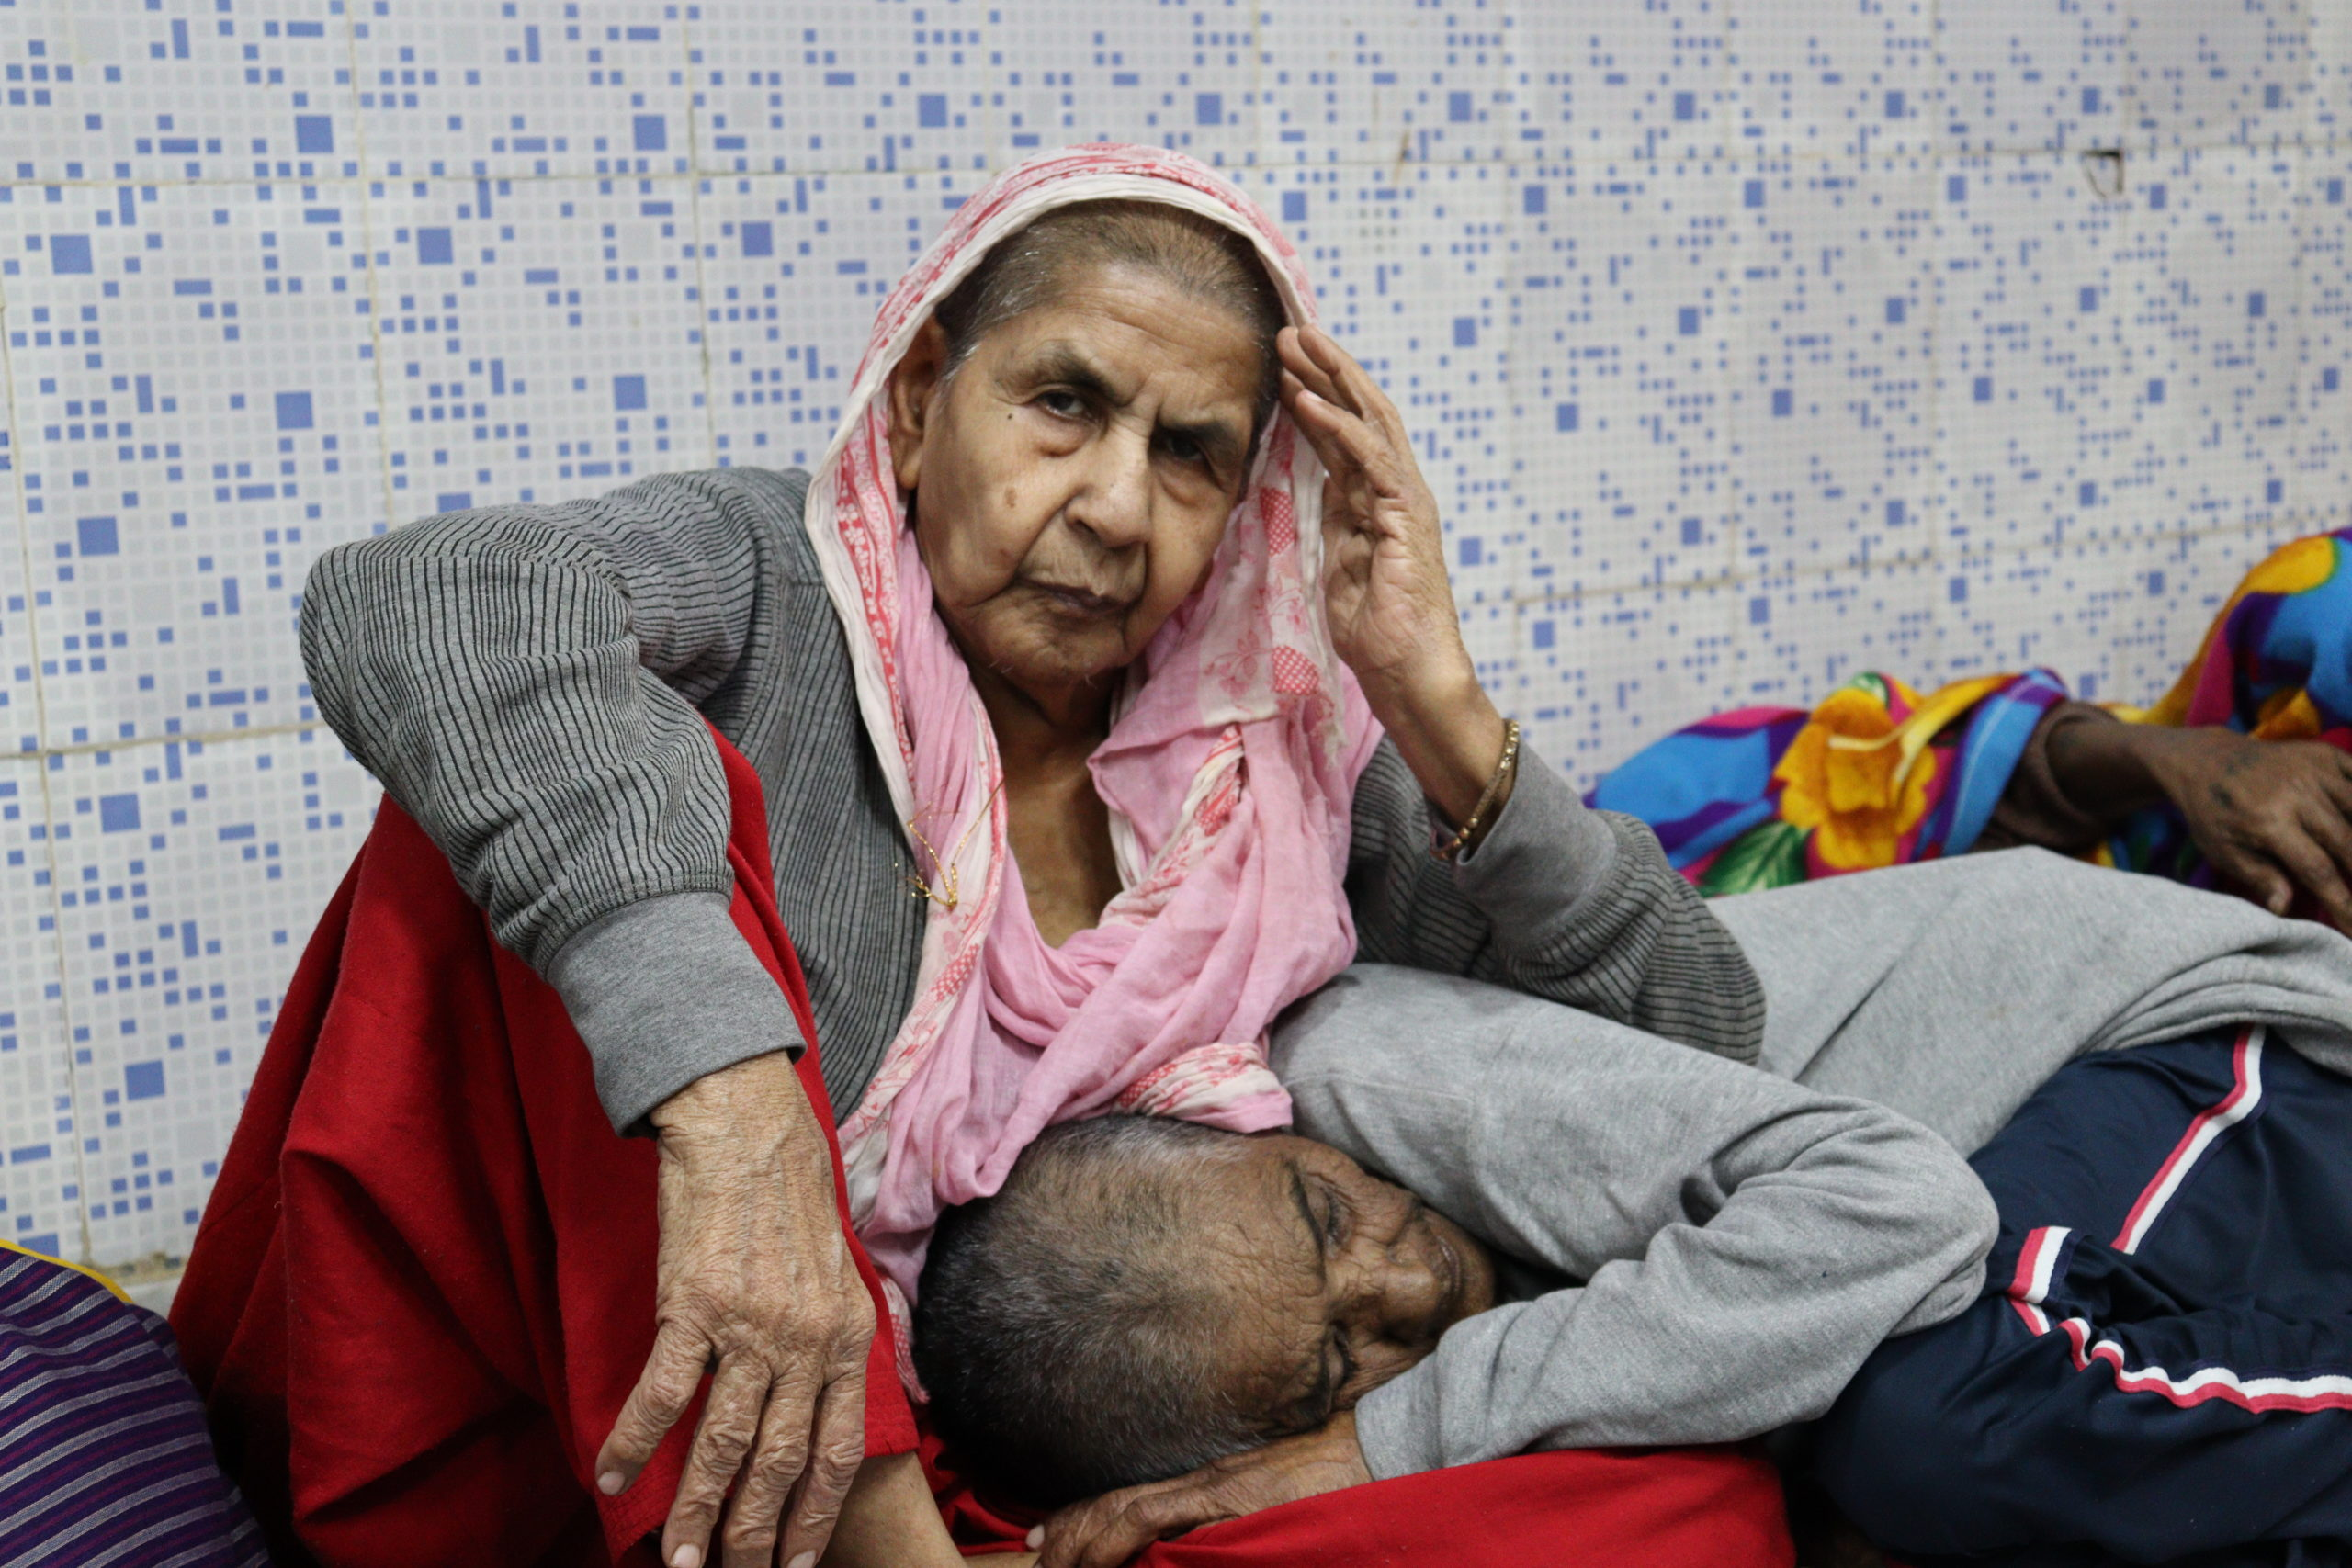 Senior citizens on International Day of Older Persons 2020: Anxious, abandoned & ailing